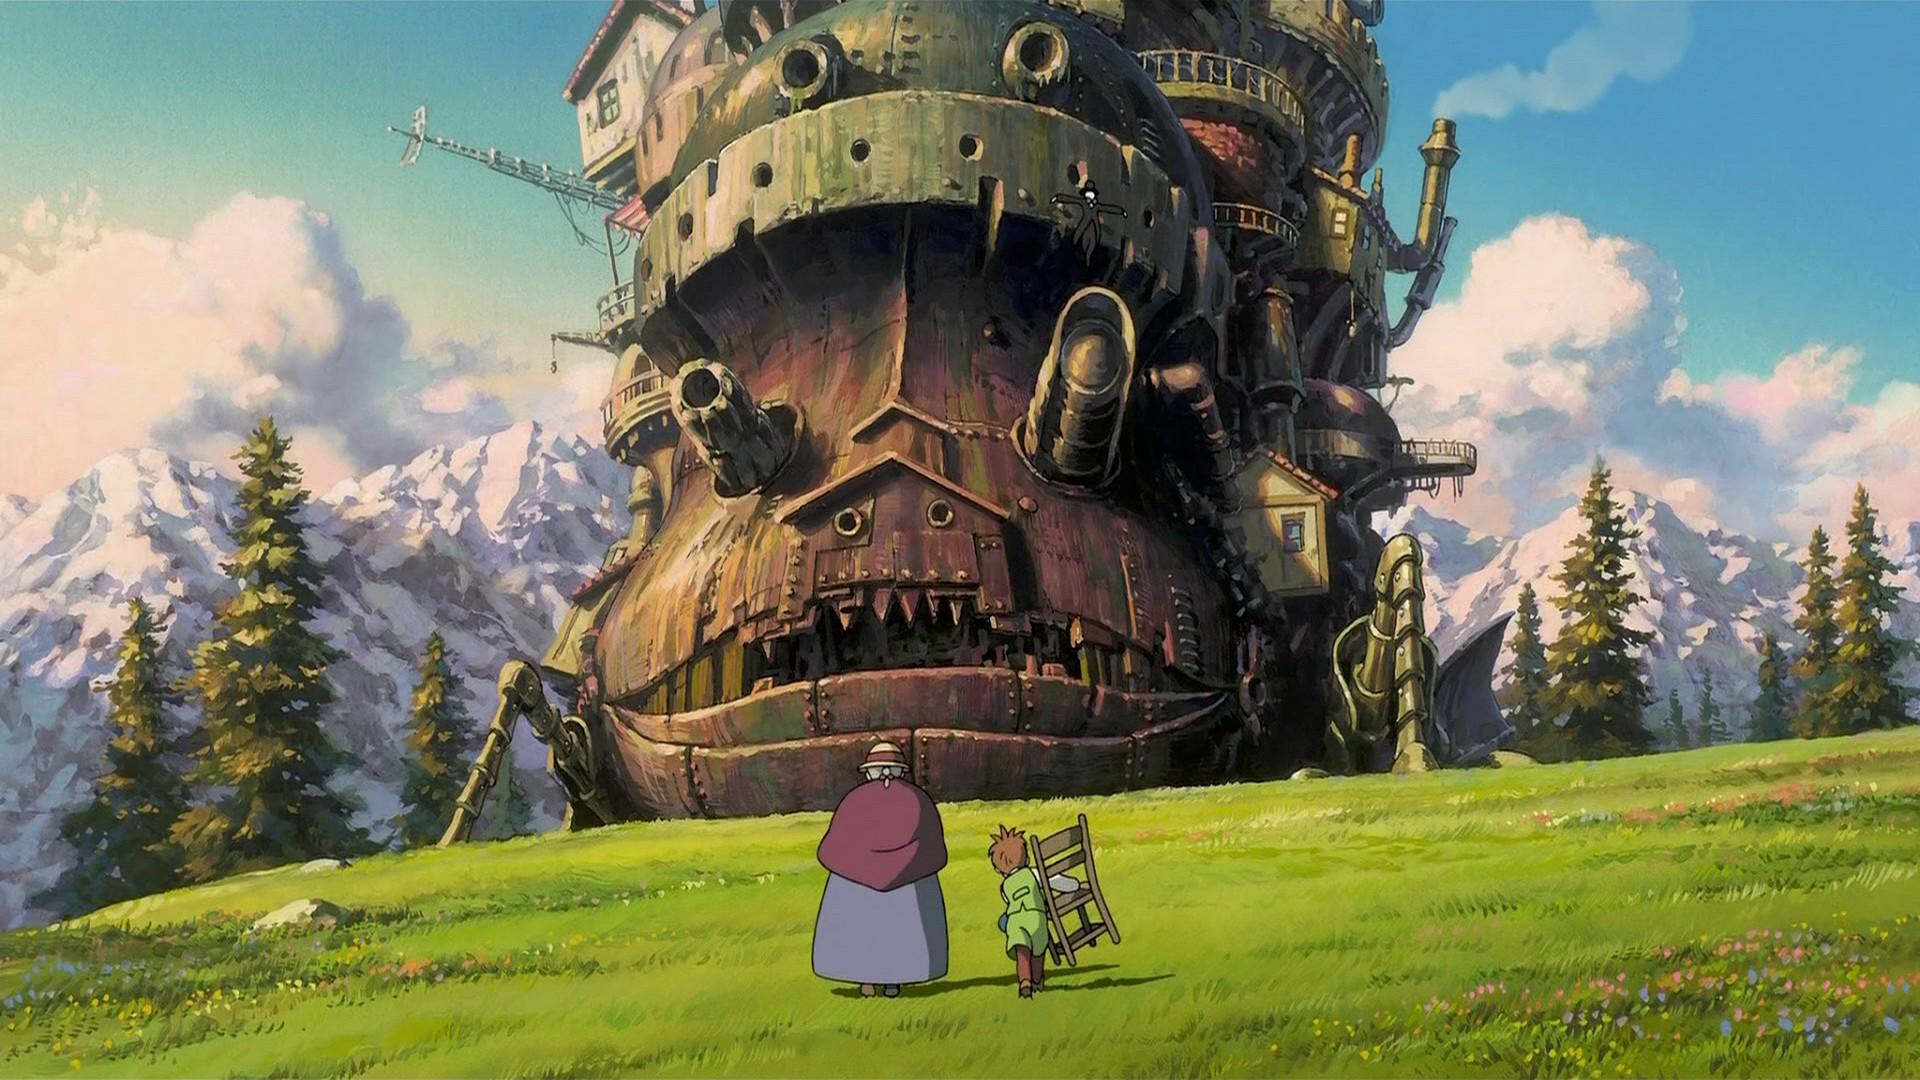 HOWL'S MOVING CASTLE Gets the SHOUT! FACTORY Treatment [Blu